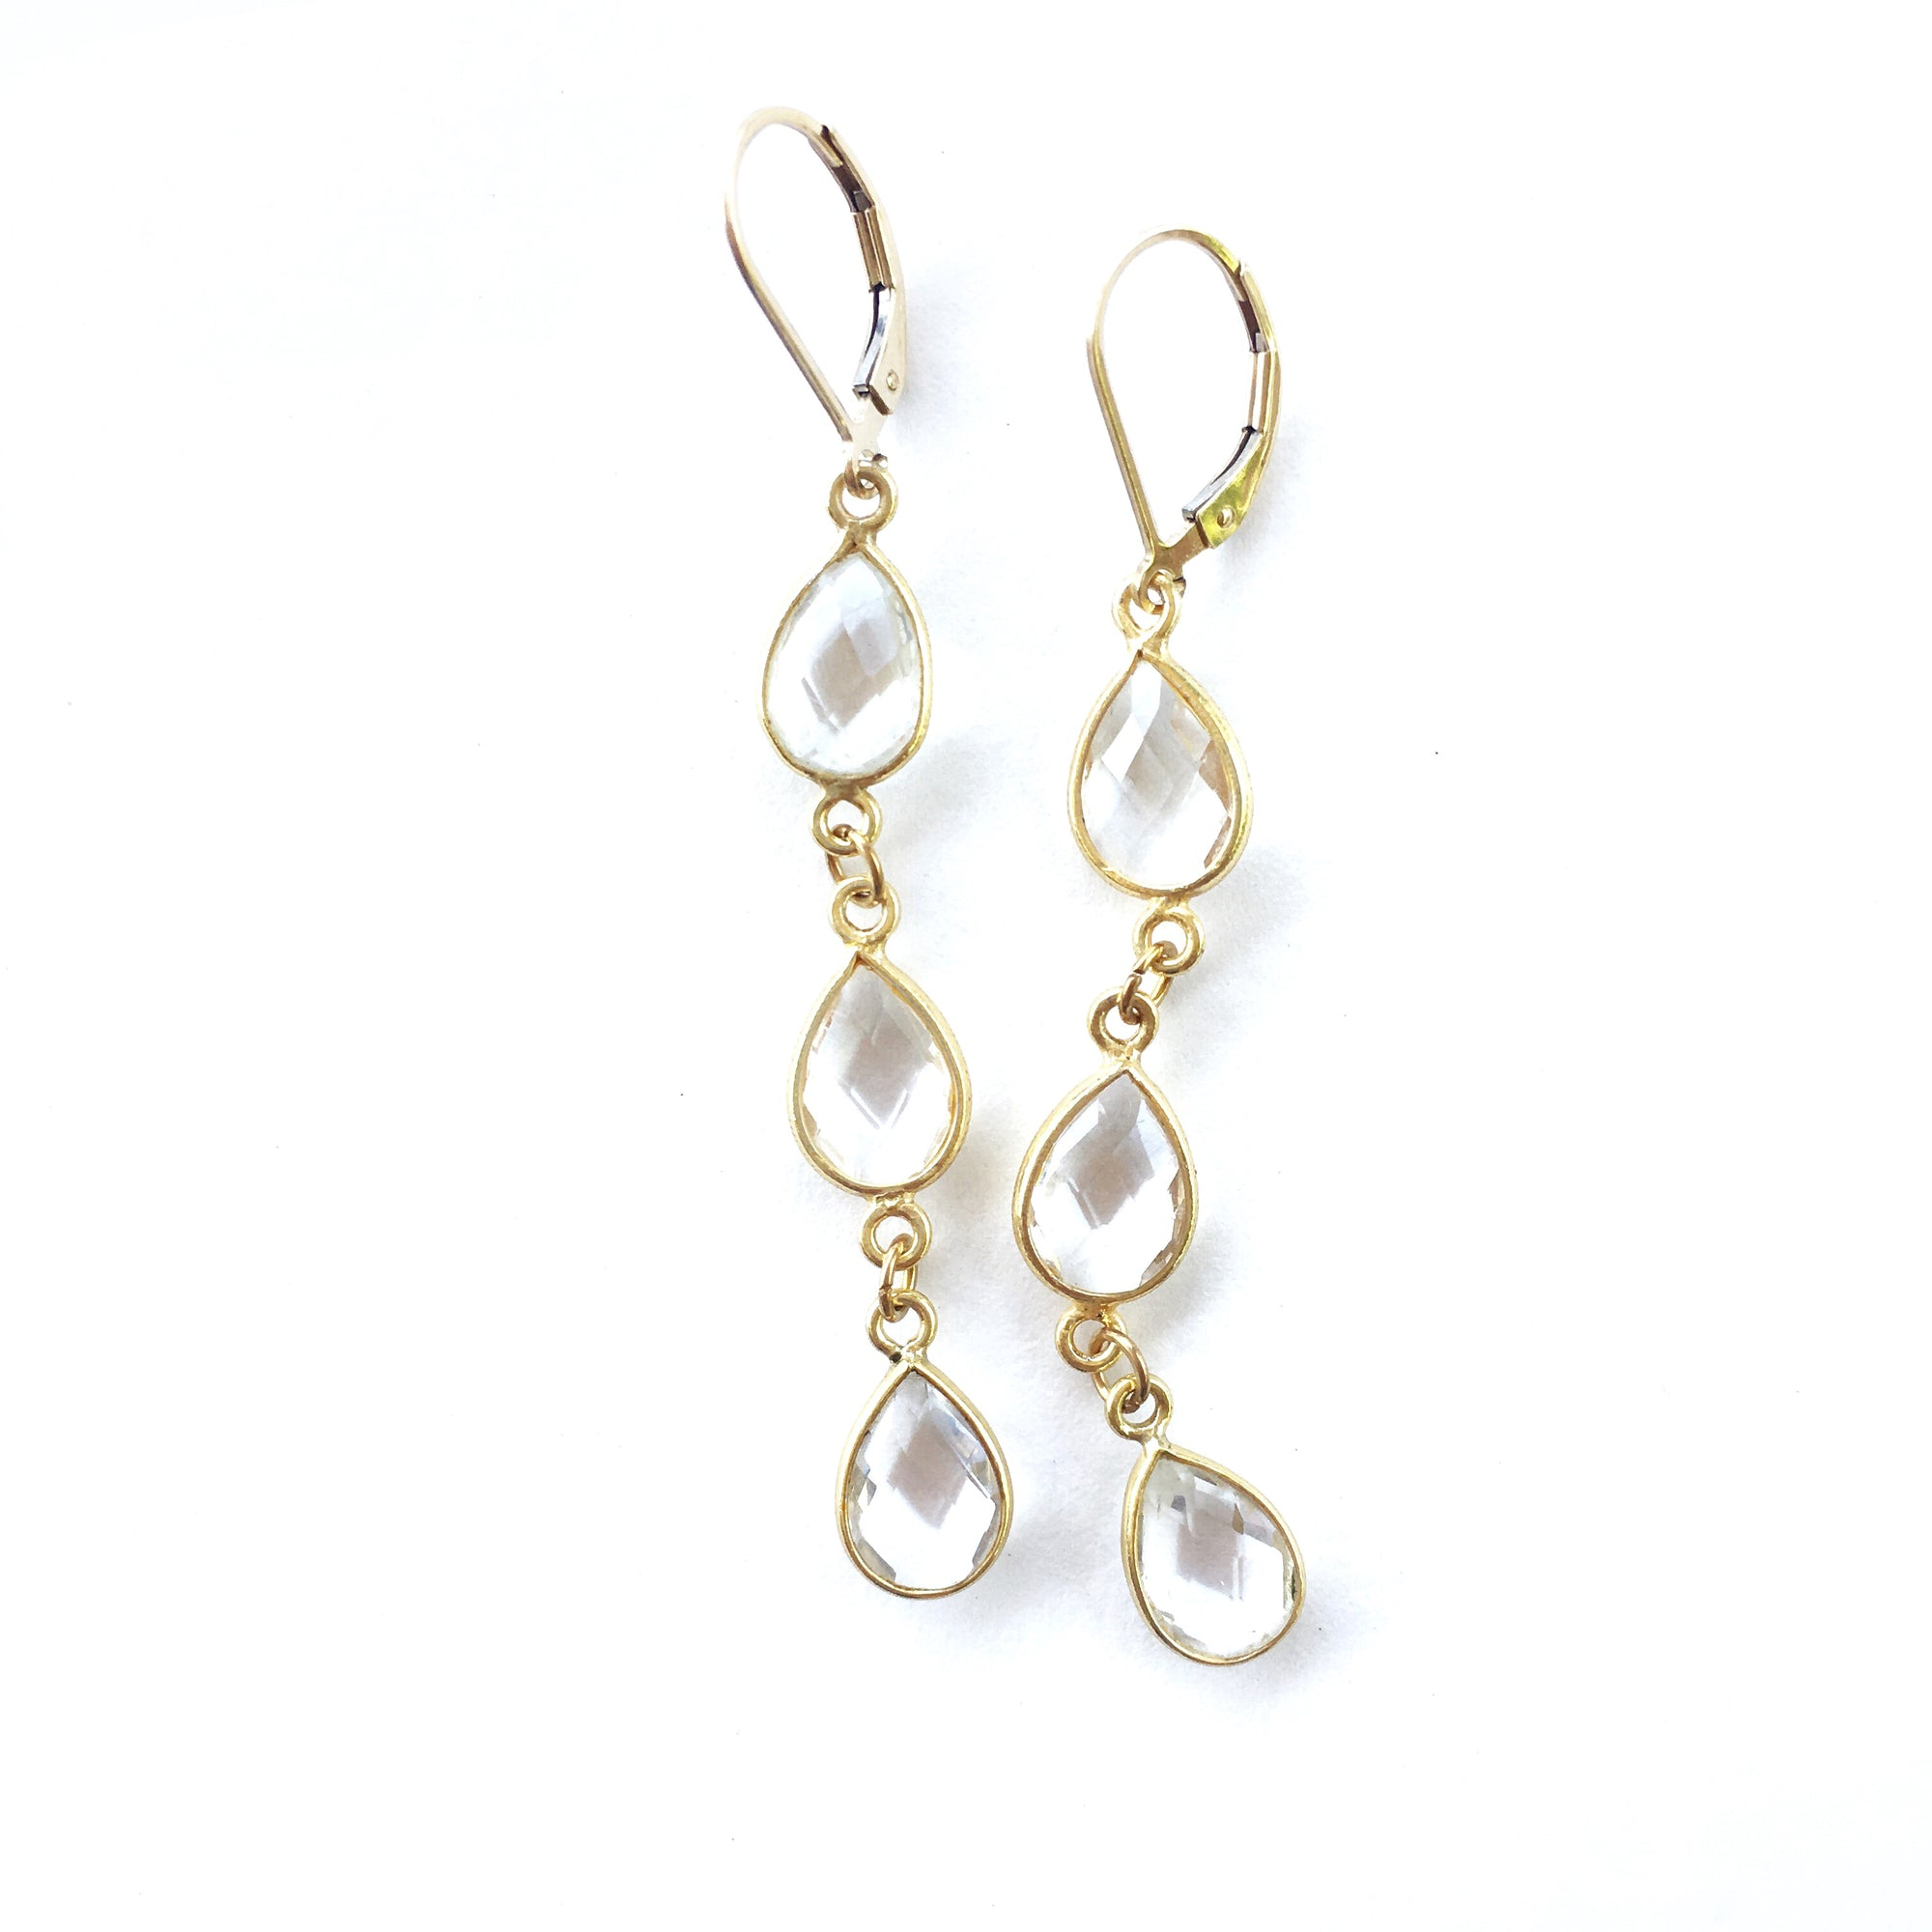 Hamptons Clear Quartz Earrings